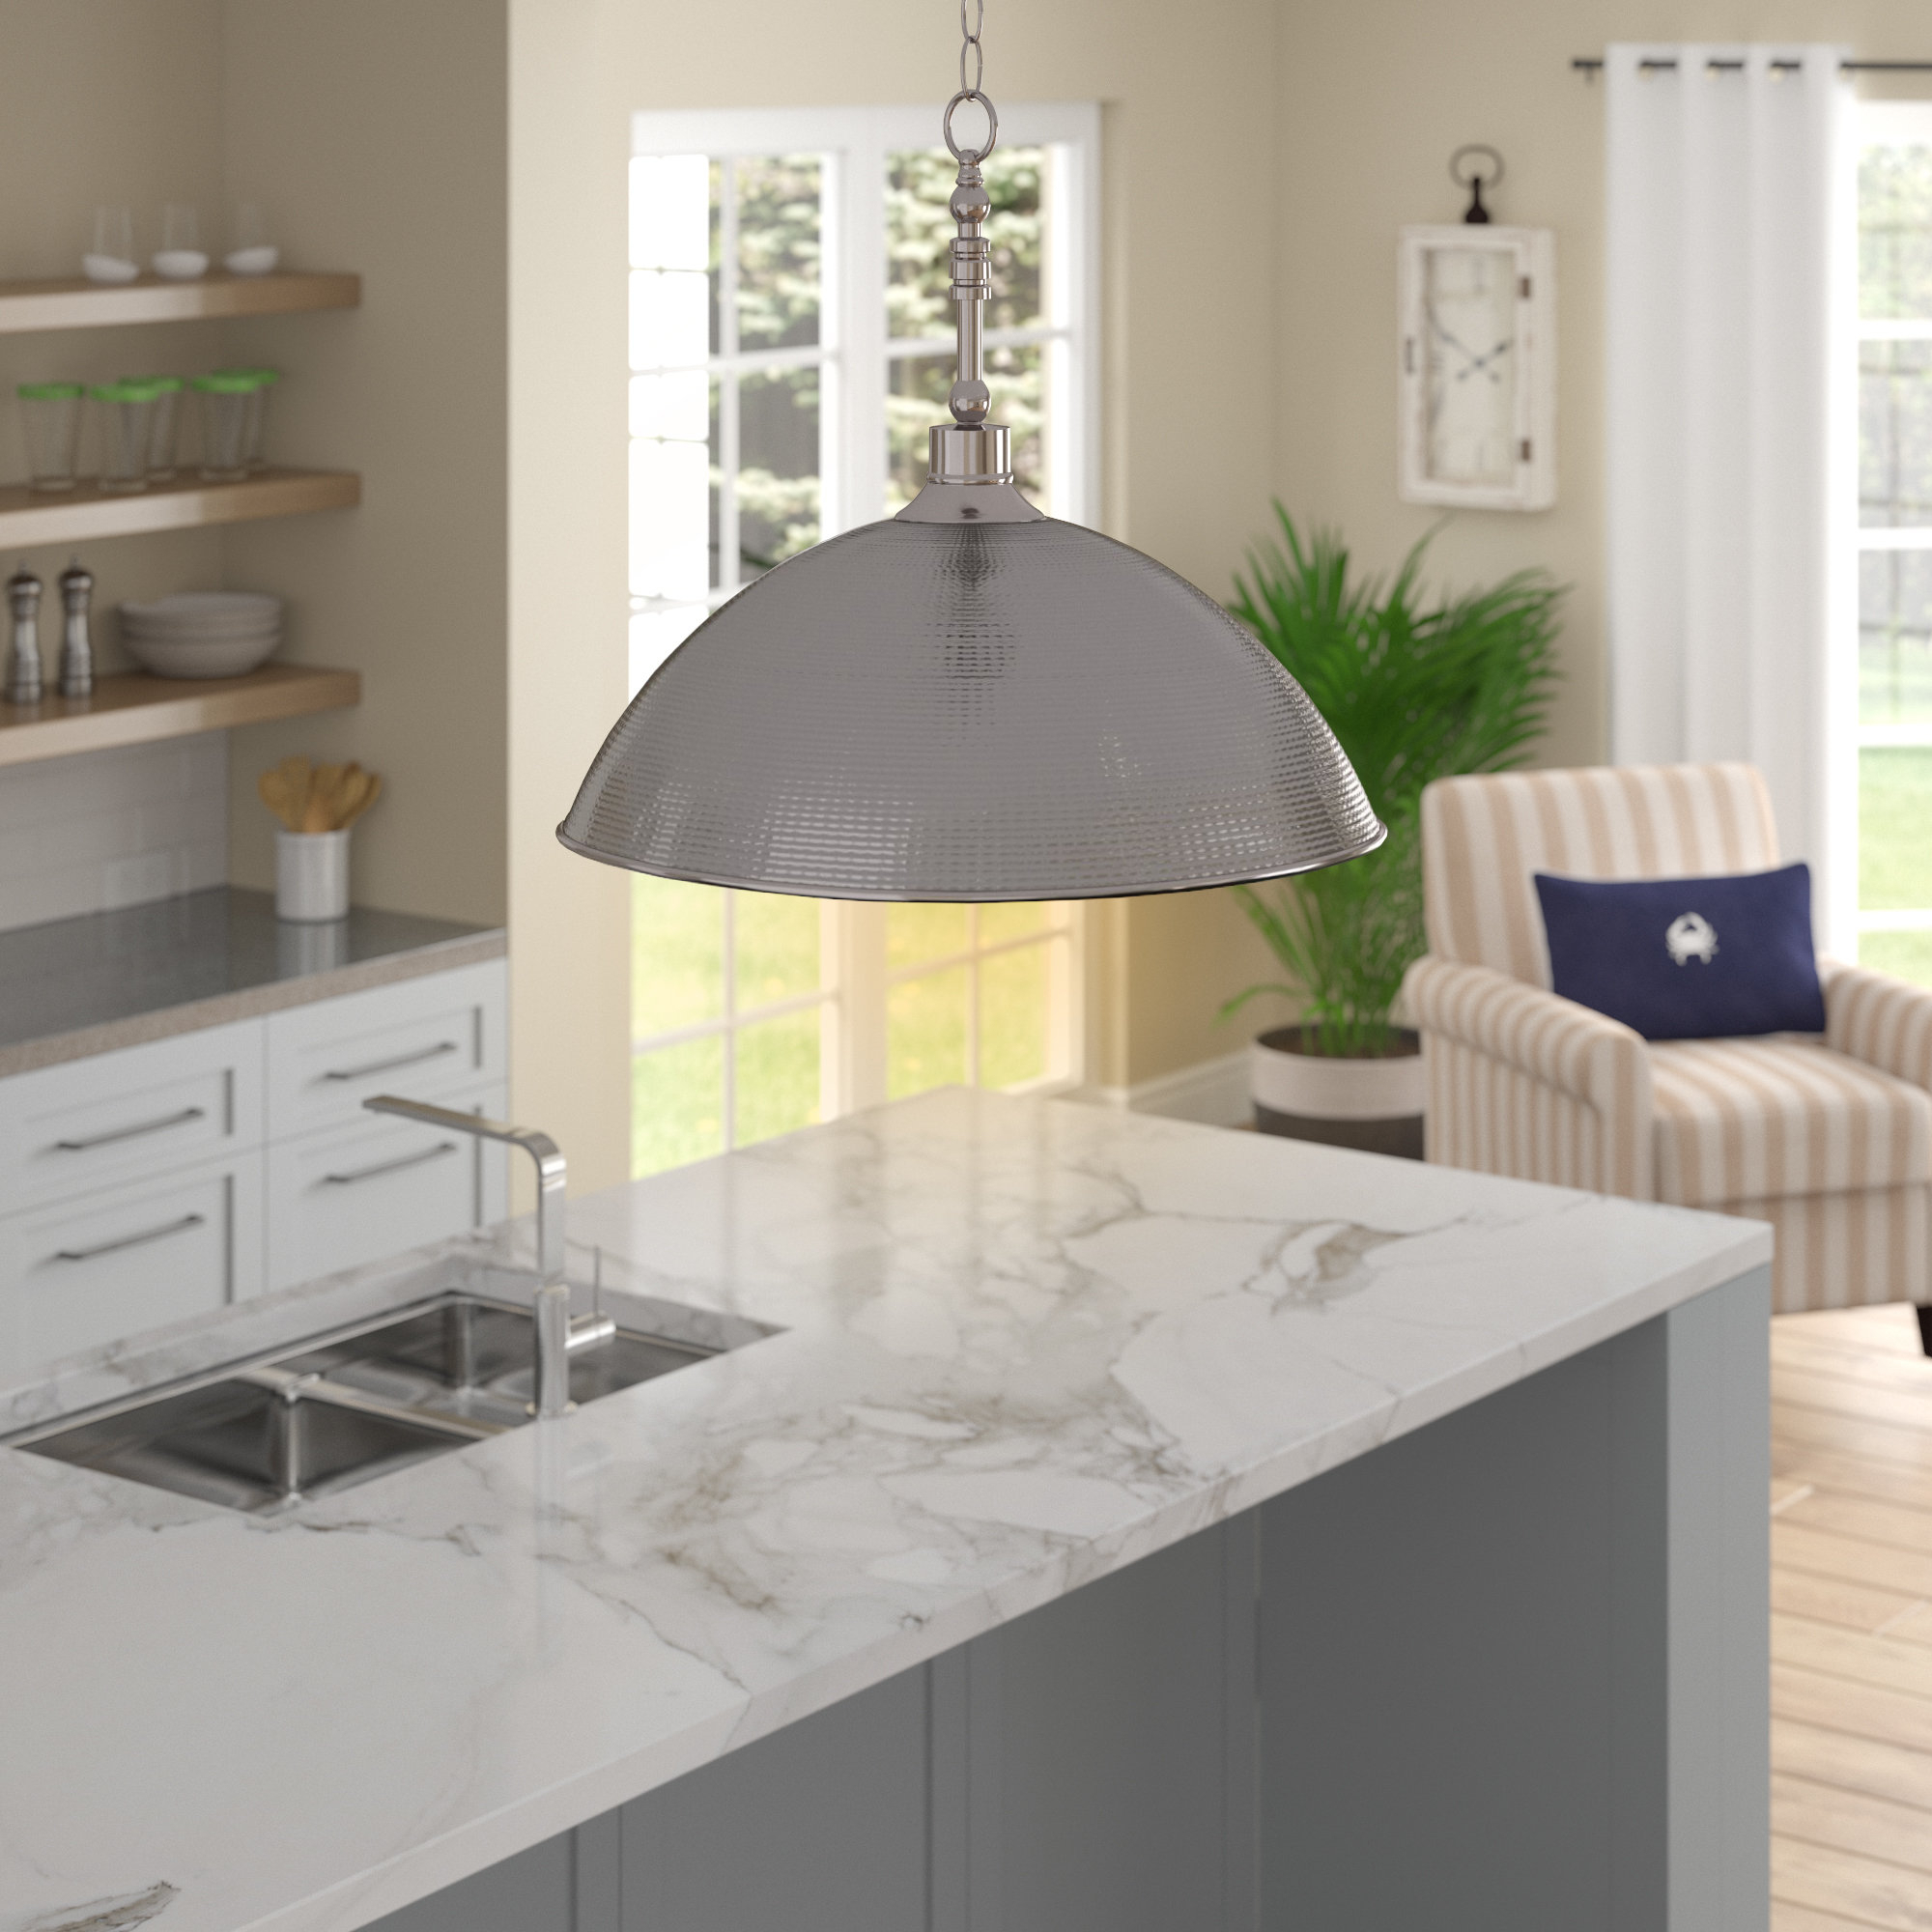 Most Recent Irwin 1 Light Single Globe Pendants Within Bridgepointe 1 Light Single Dome Pendant (View 16 of 25)